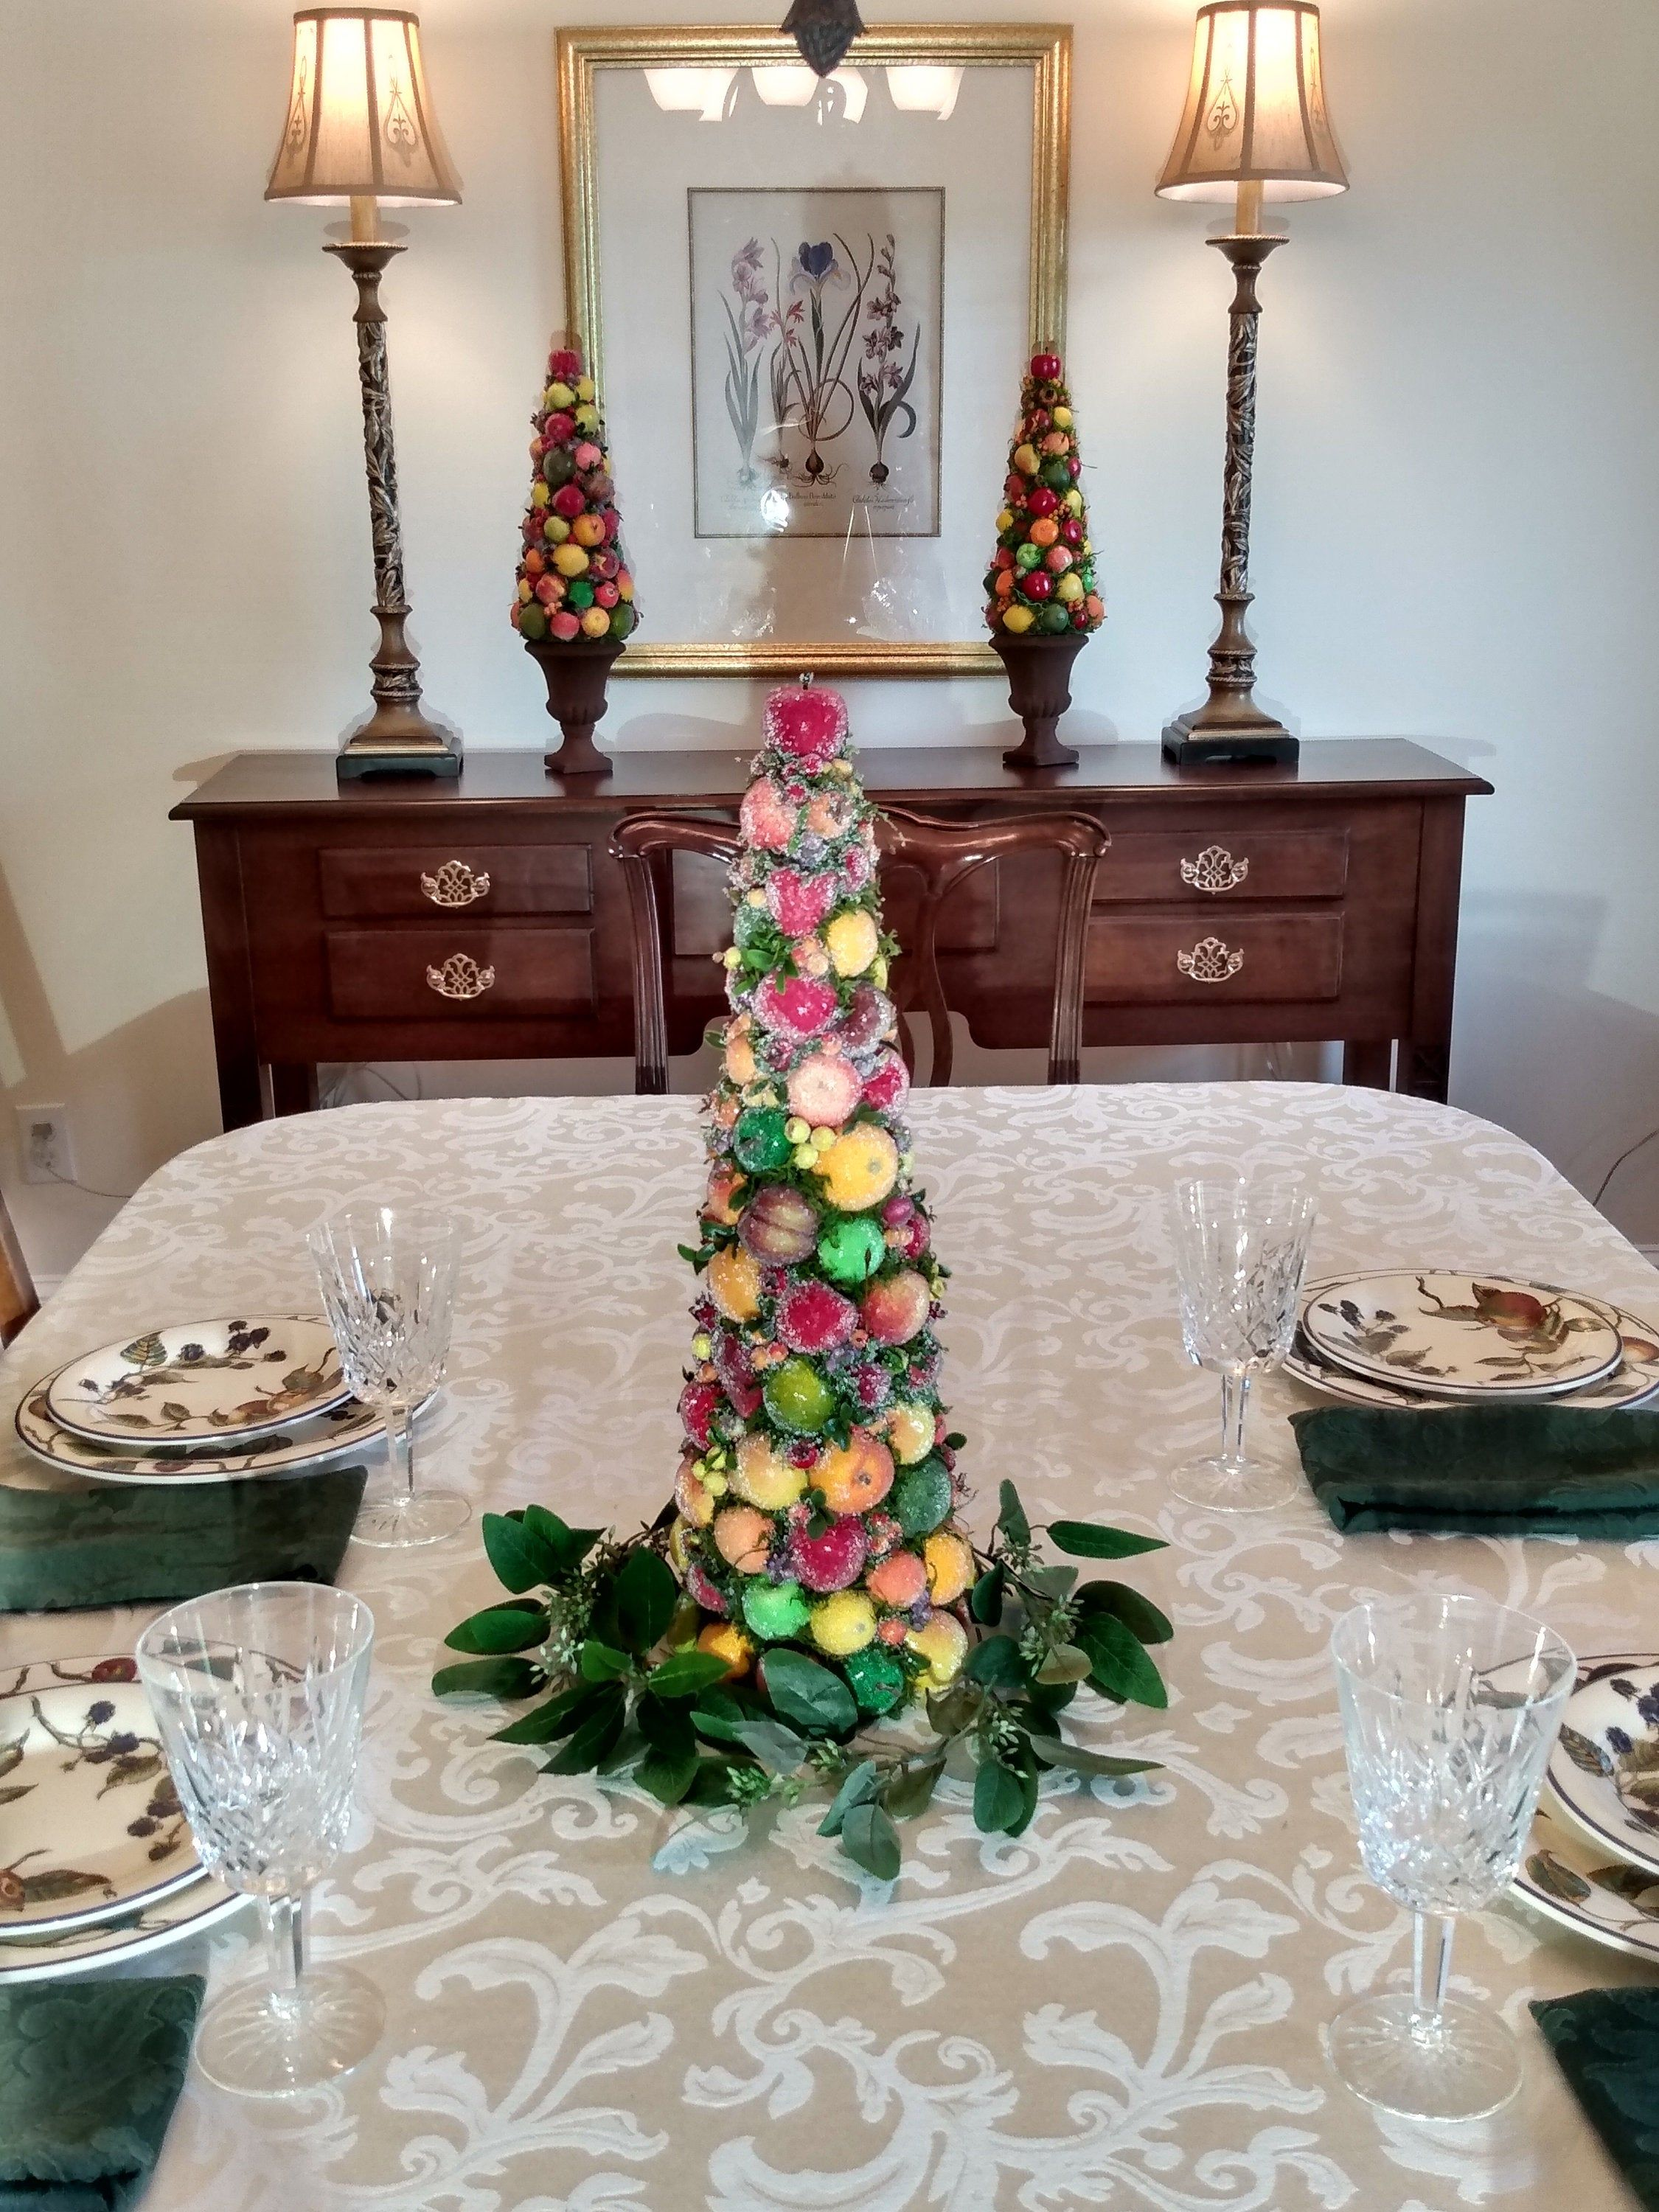 Spring Topiary Sugared Fruit Dining Table Centerpiece Dining Table Centerpiece Christmas Centerpieces Christmas Topiary